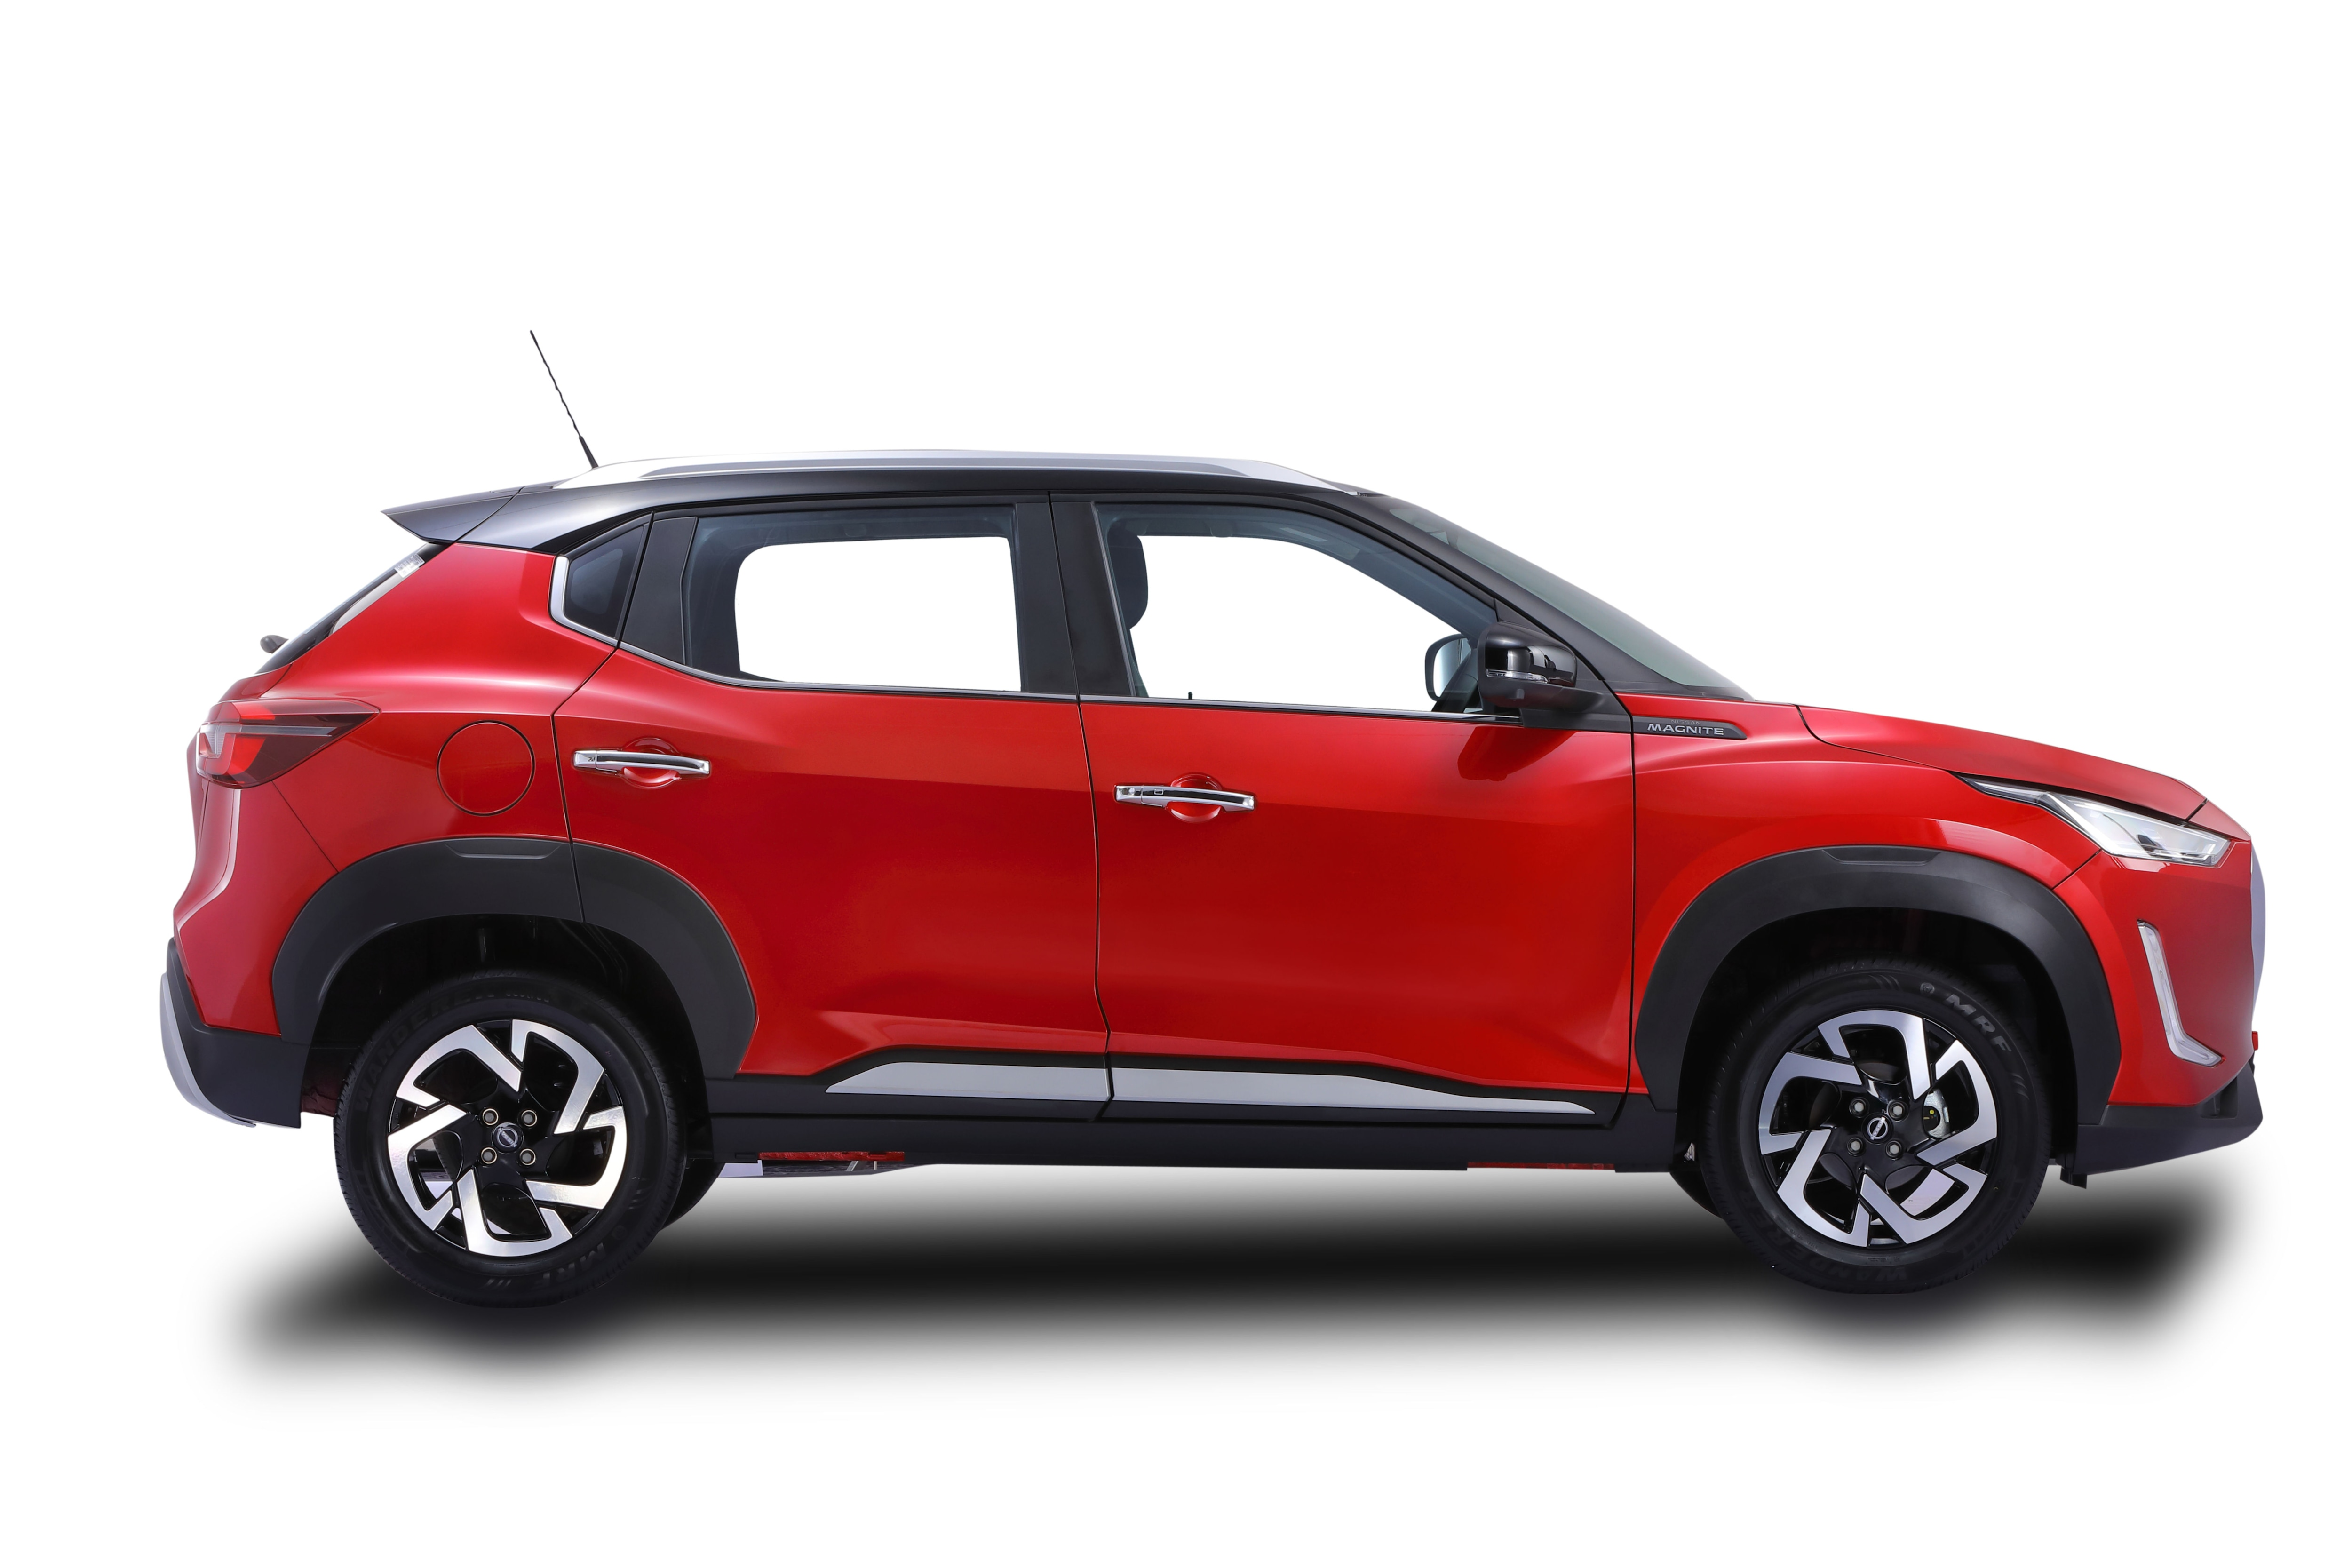 Over at the side, Magnite's design benefits from square wheel arches and a ground clearance of 204 mm. The vehicle gets 16-inch diamond-cut alloy wheels.